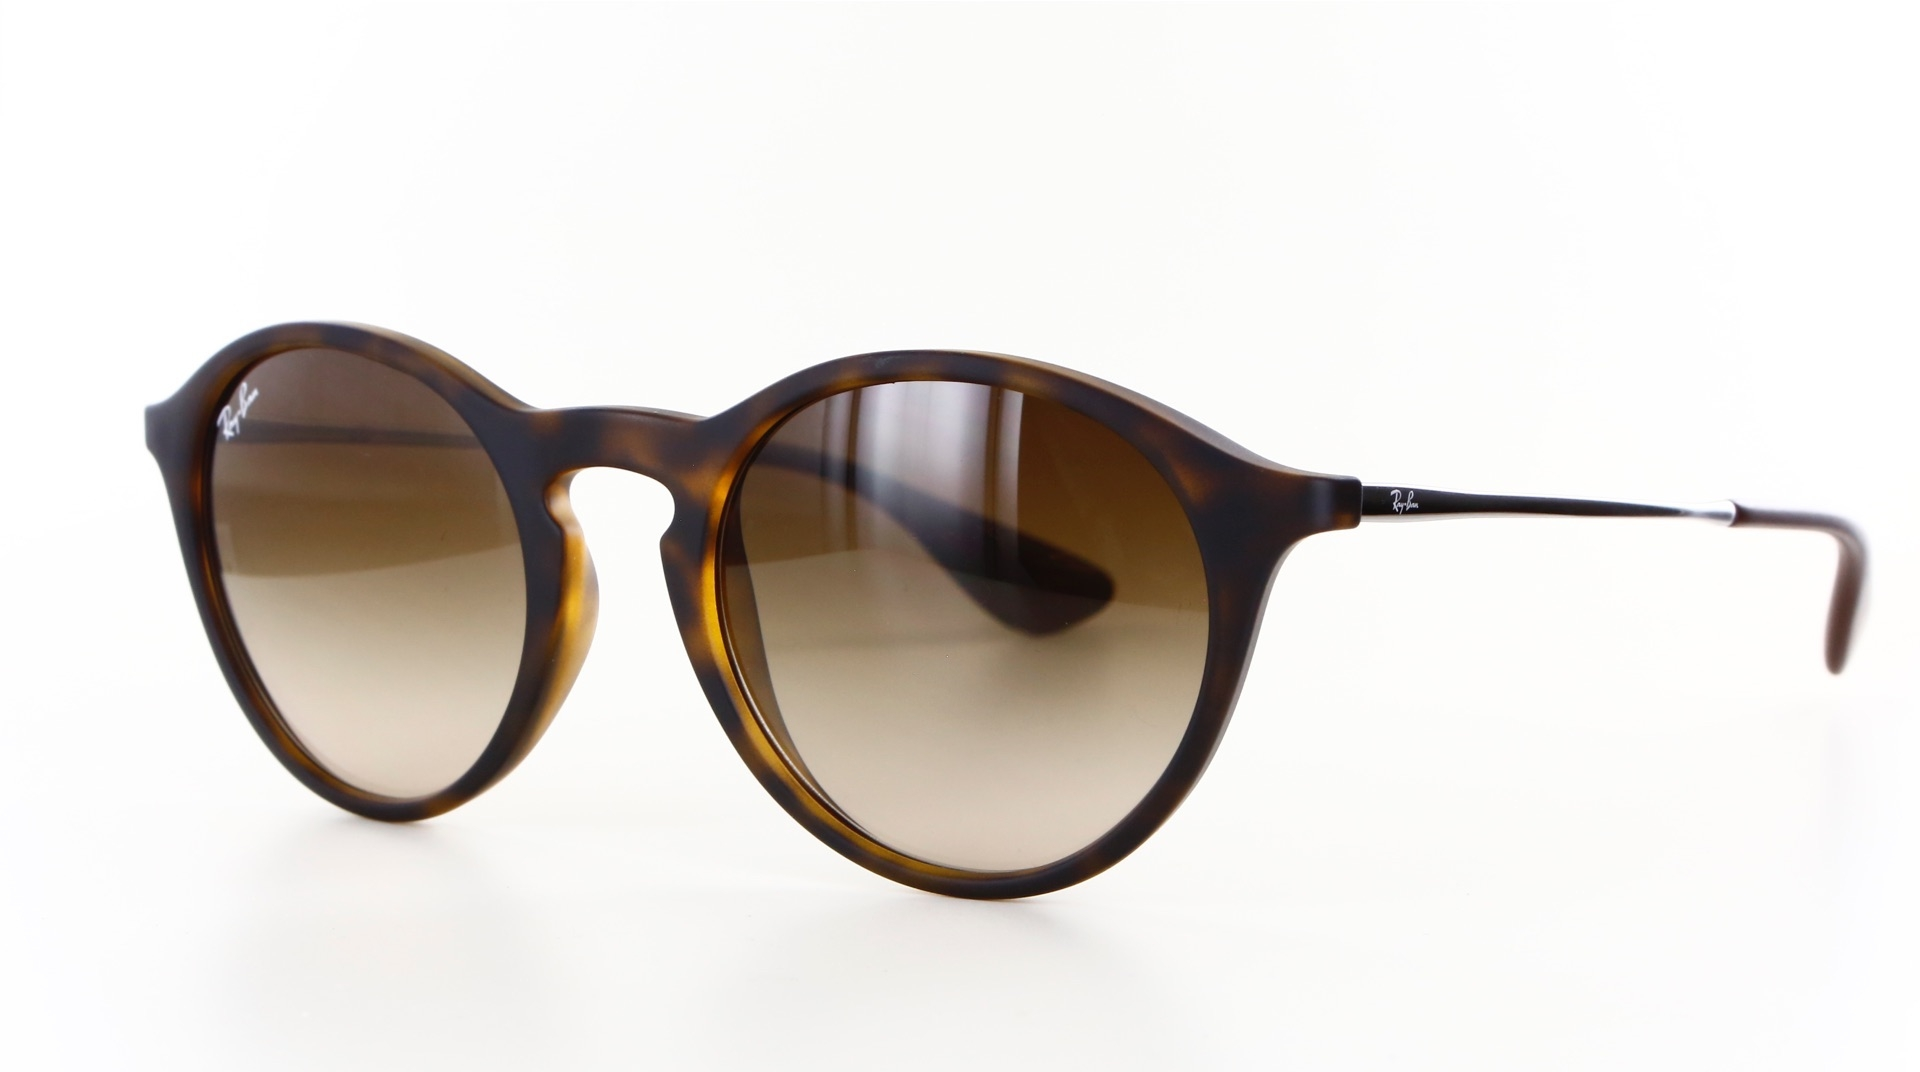 Ray-Ban - ref: 75388